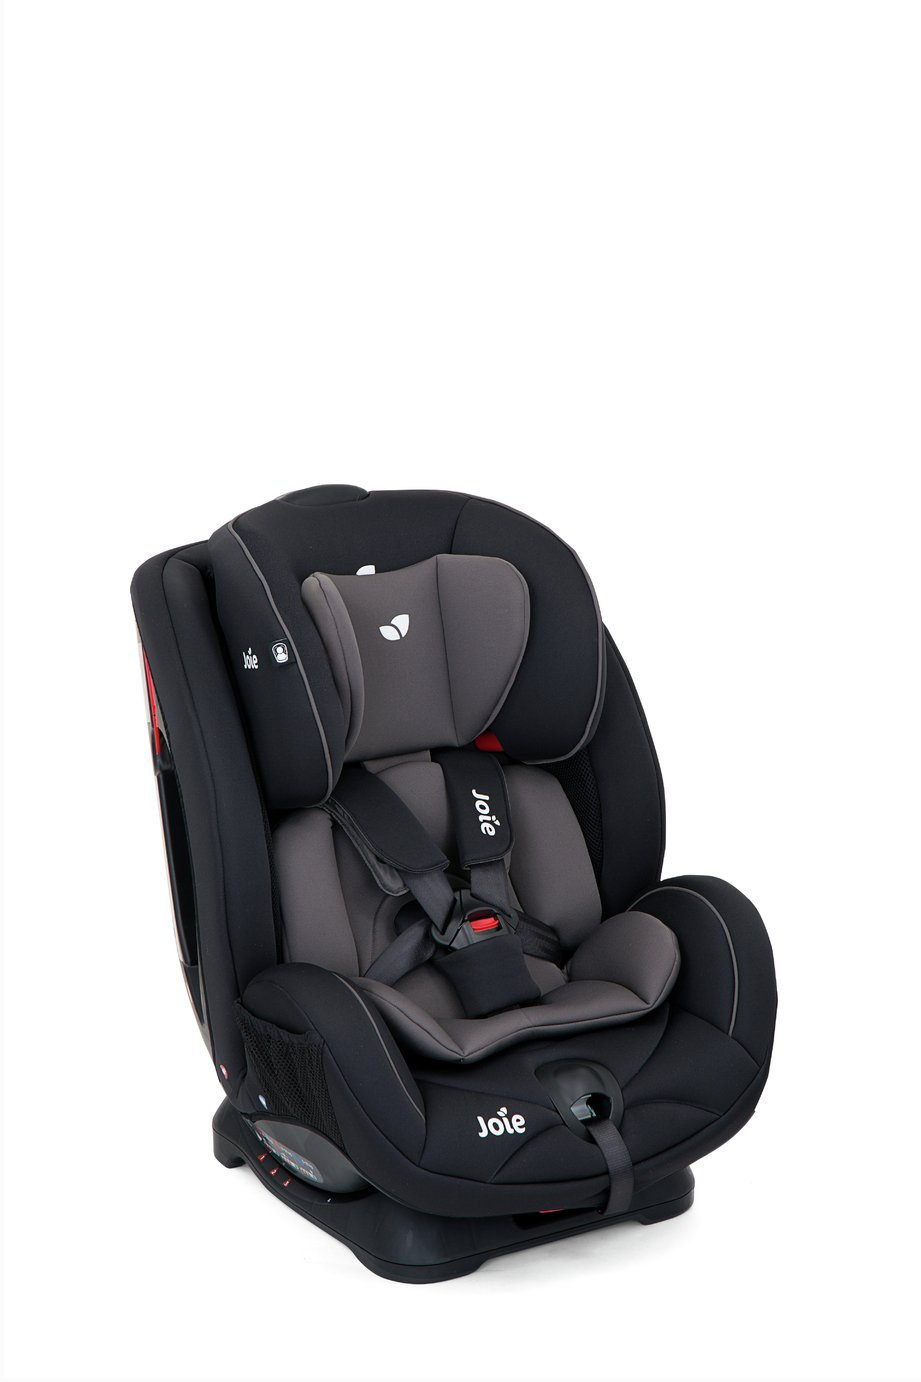 Joie Stages Group 0 /1/2 Car Seat - Coal